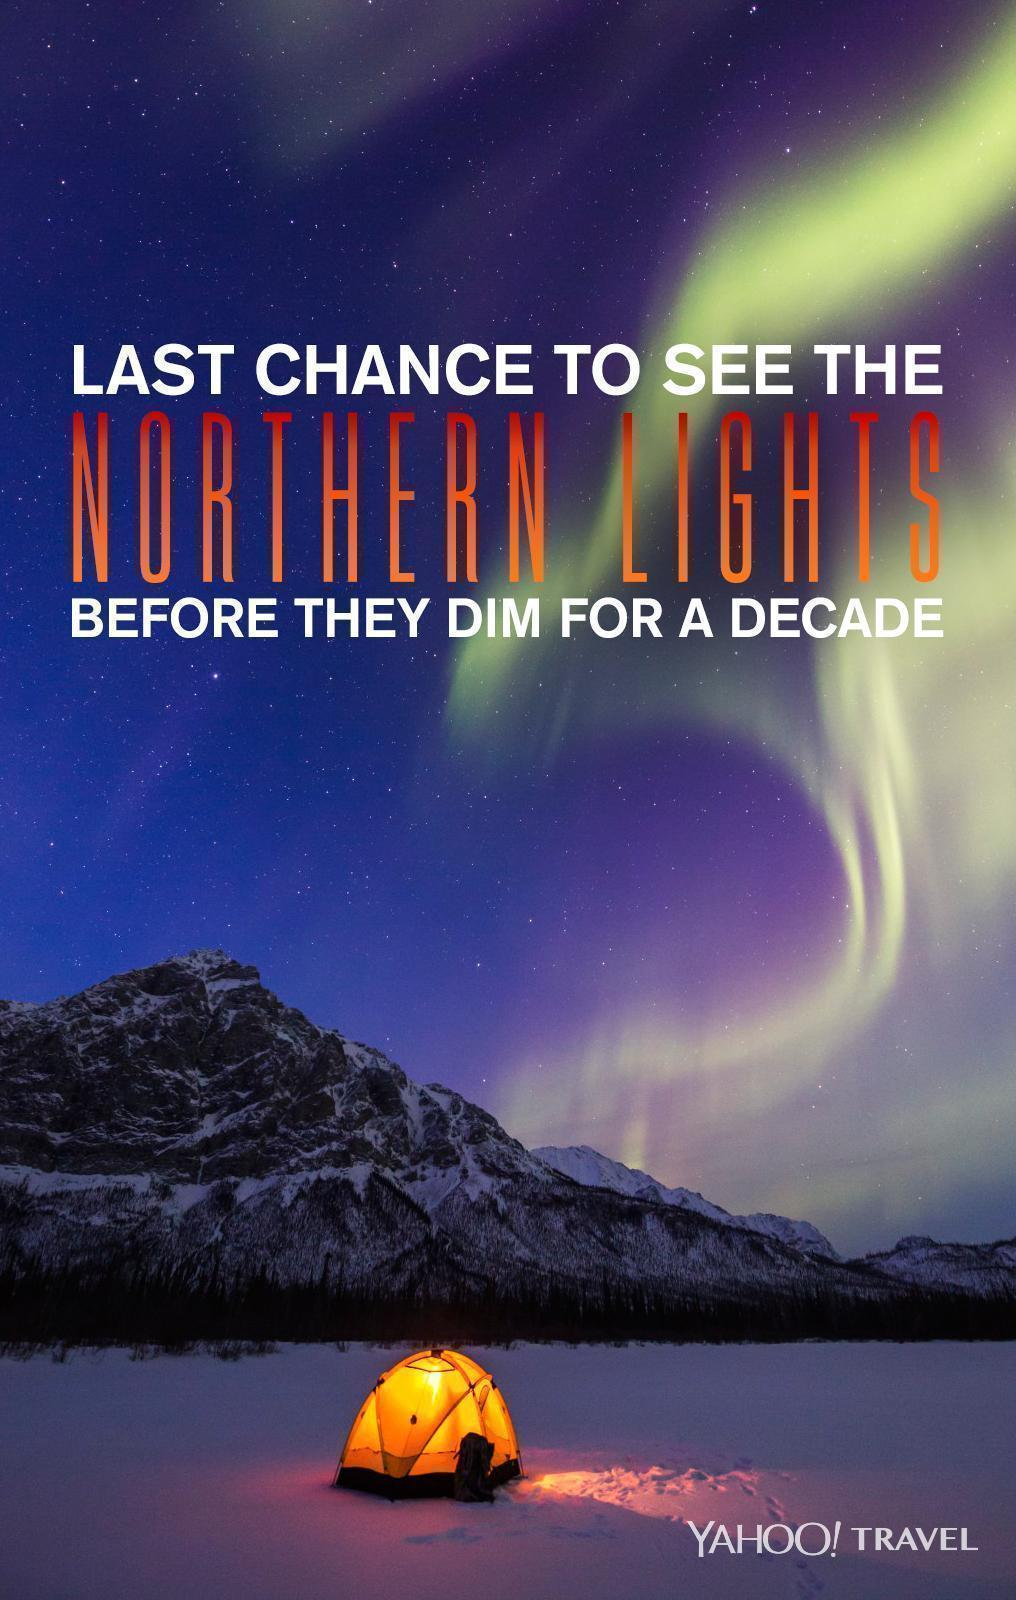 Last Chance to See the Northern Lights Before They Dim for a Decade